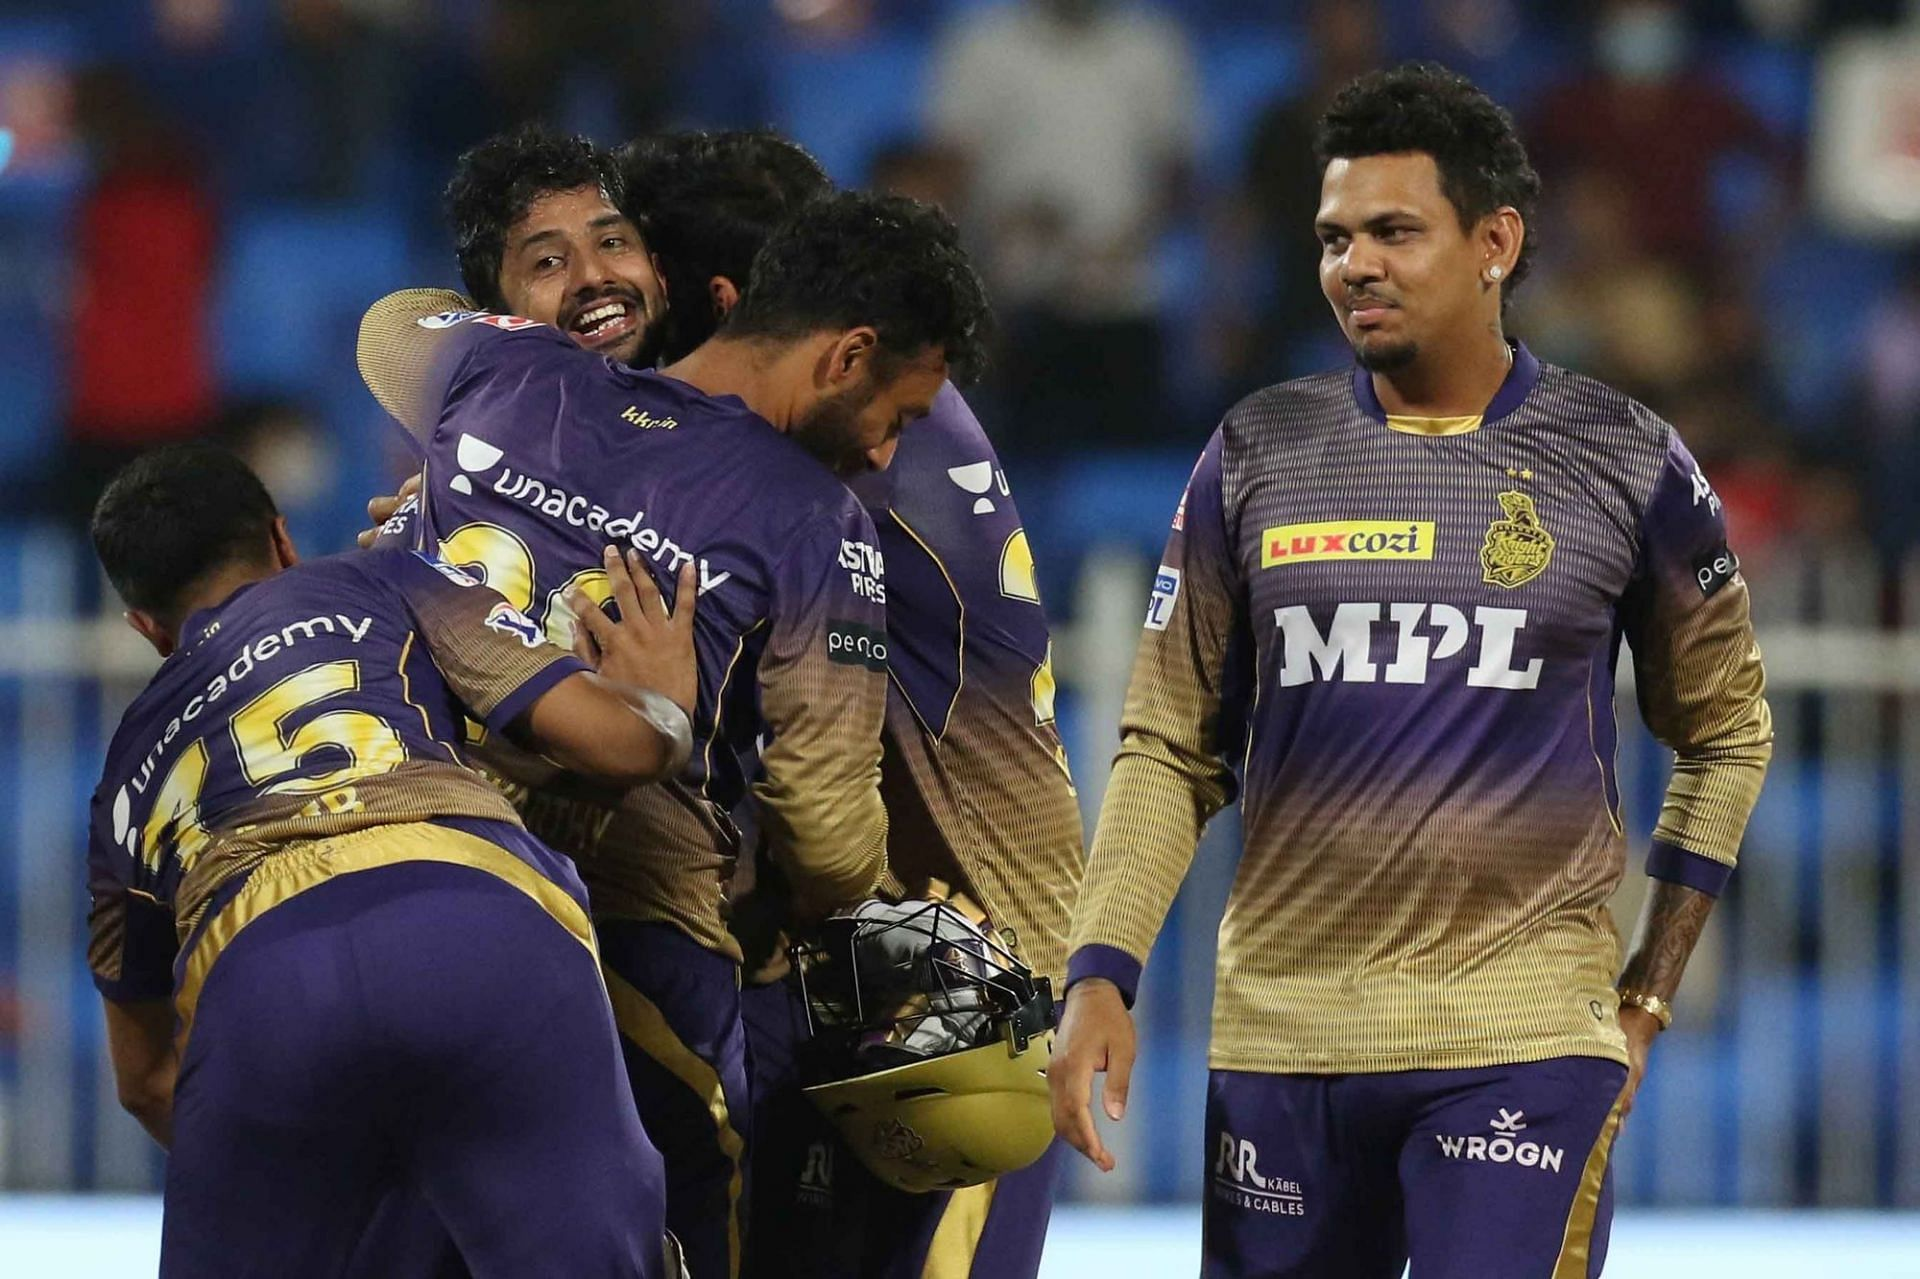 Life lessons from KKR's IPL 2021 campaign: Eerie silence to streets brimming with joy